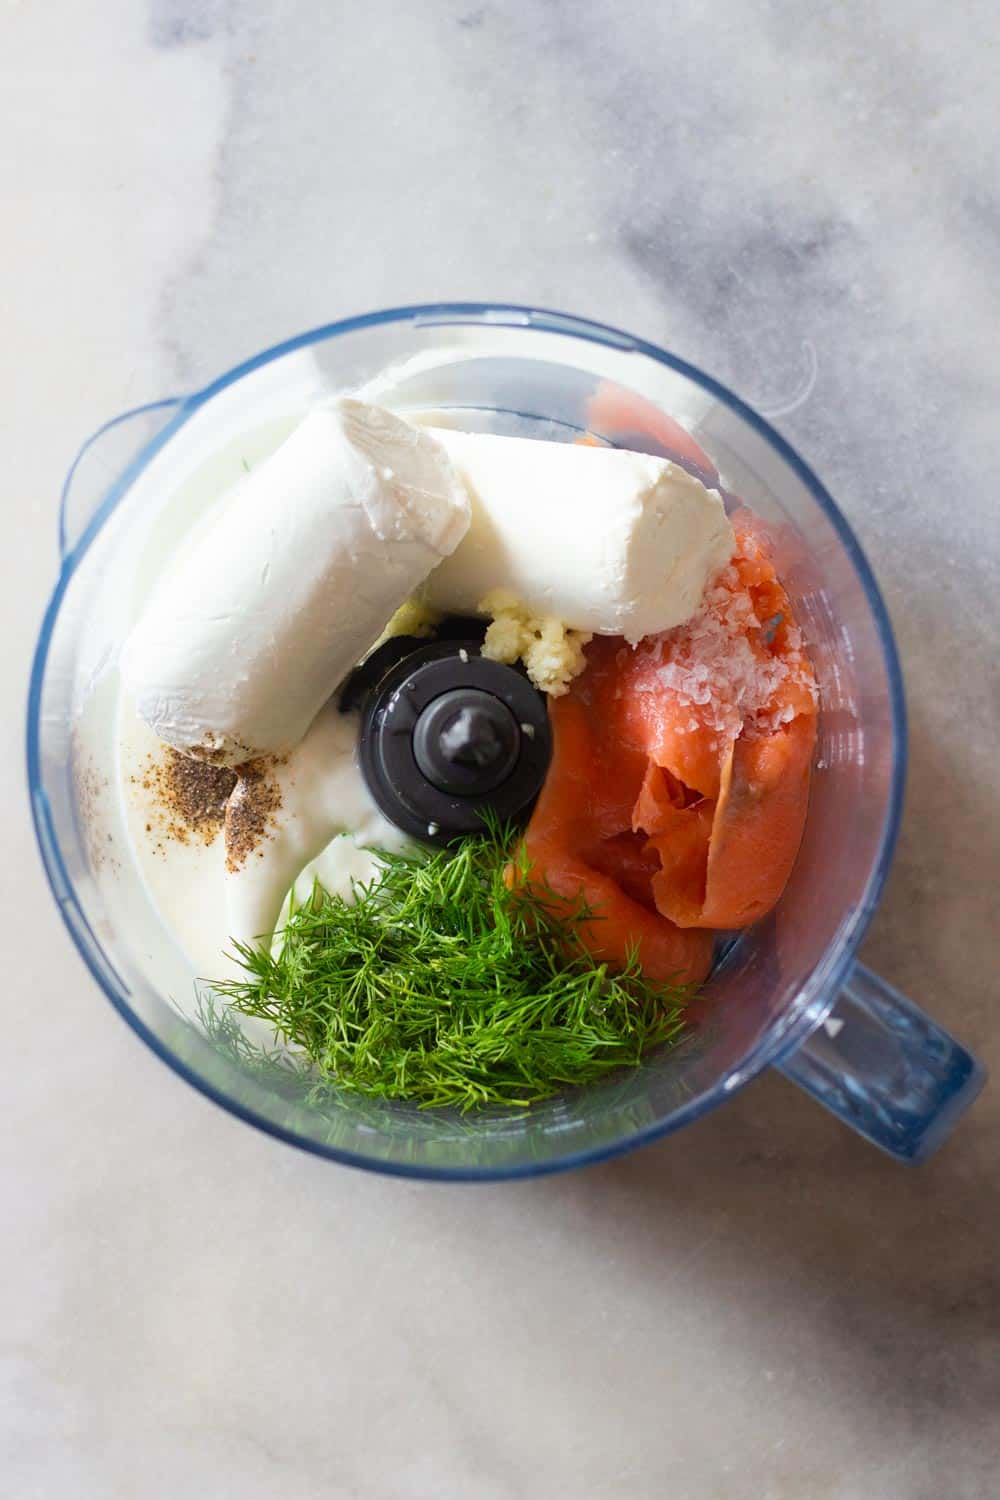 Ingredients for smoked salmon dip in a food processor